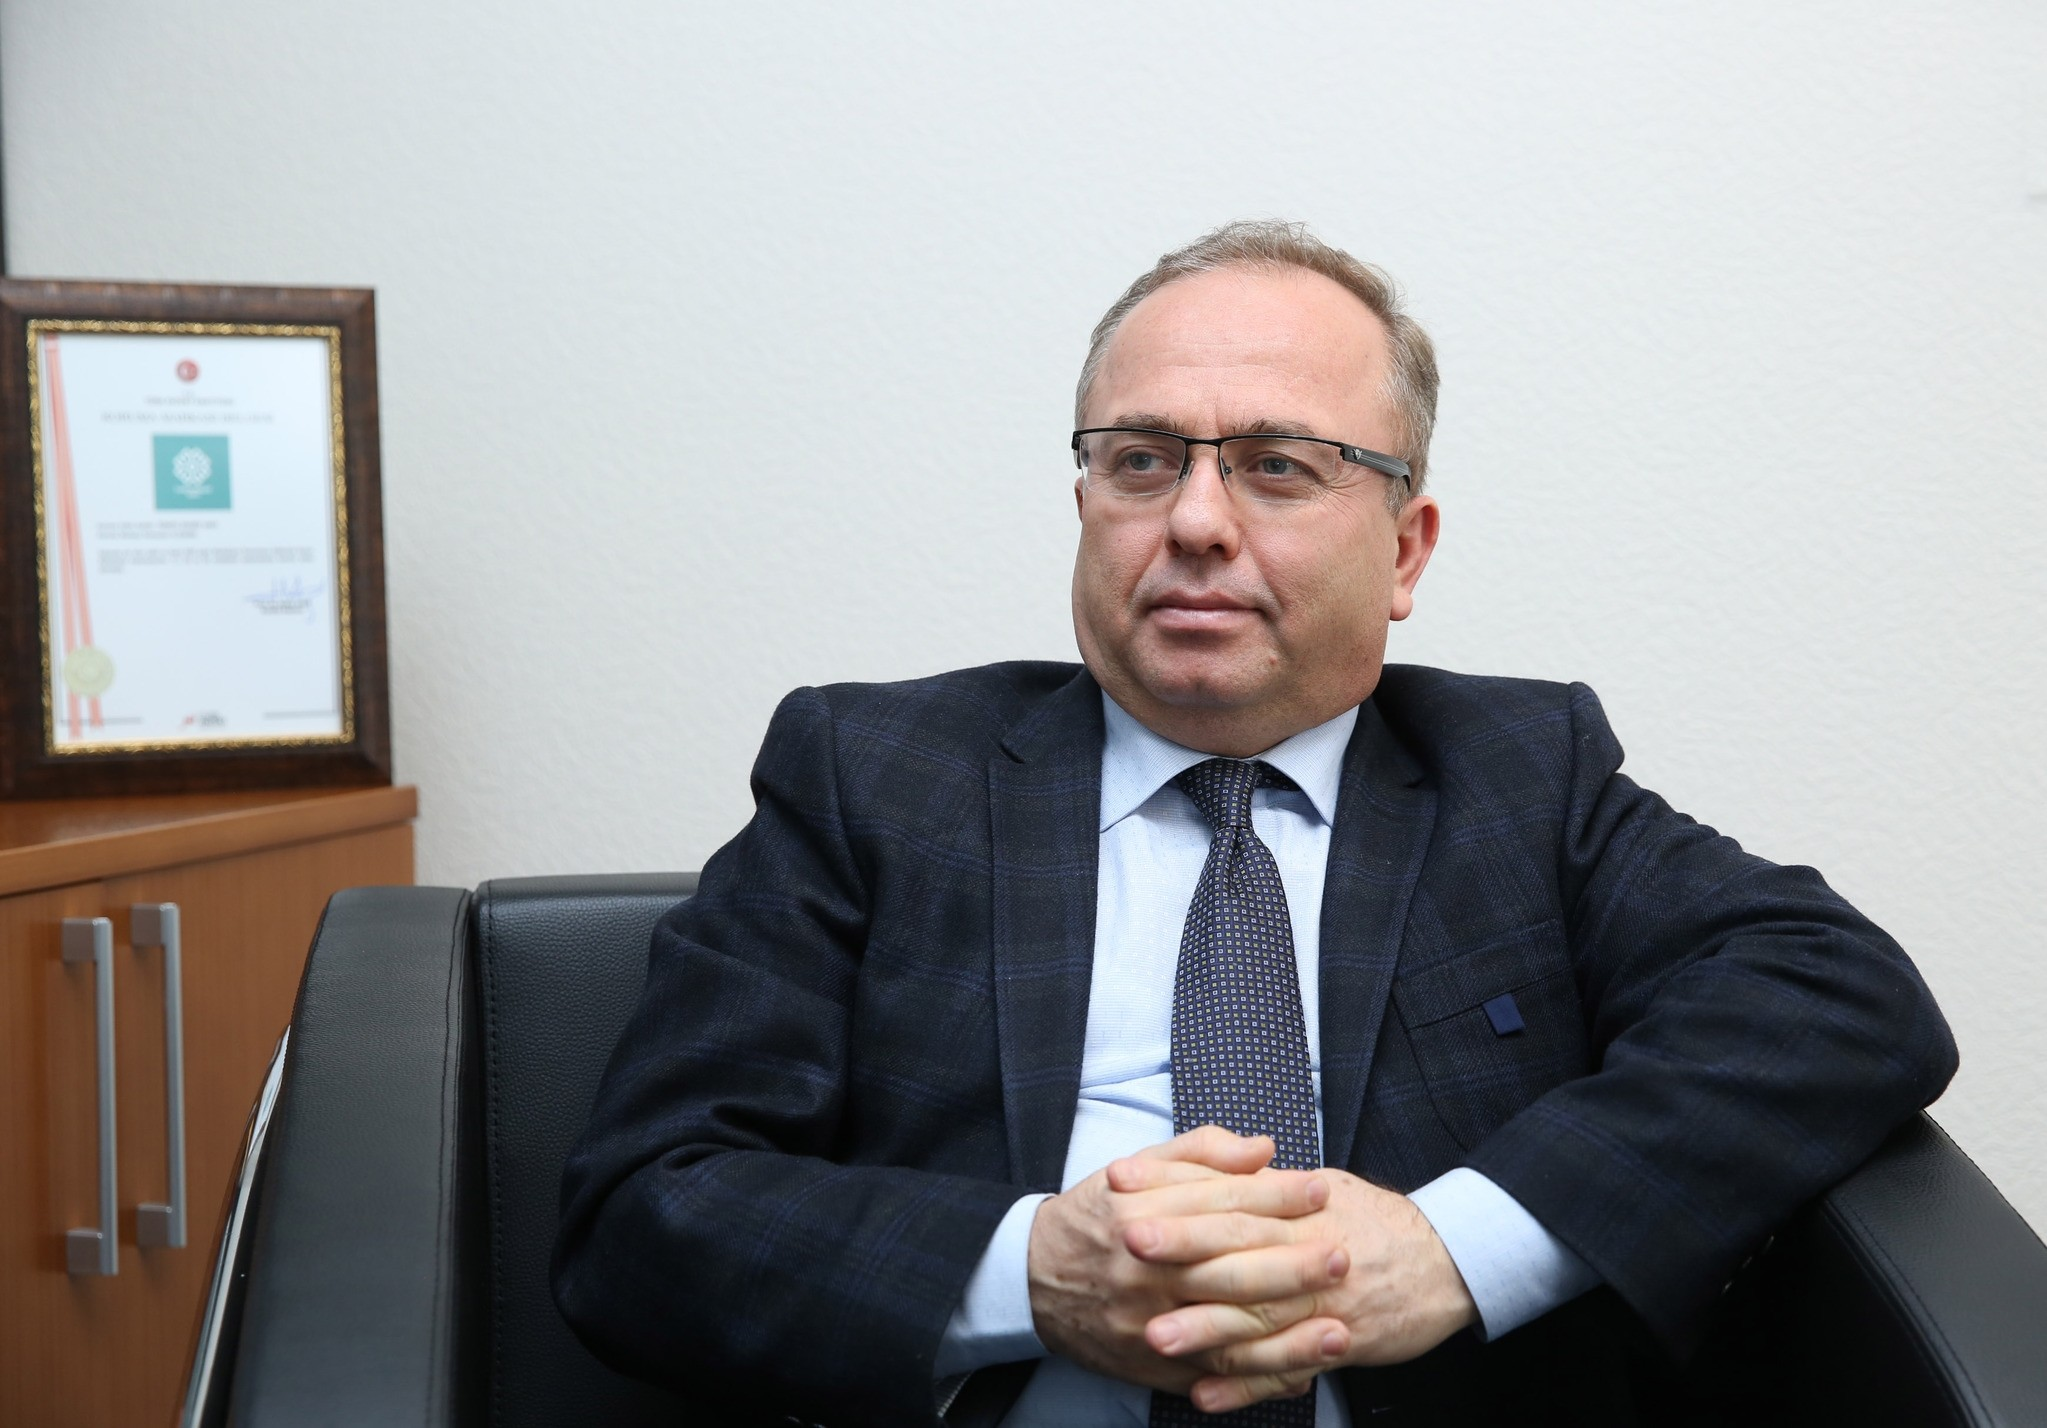 Maarif Foundation Chairman Akgu00fcn said that Turkeyu2019s accumulated educational knowledge may help civilizations of the world in understanding each other.